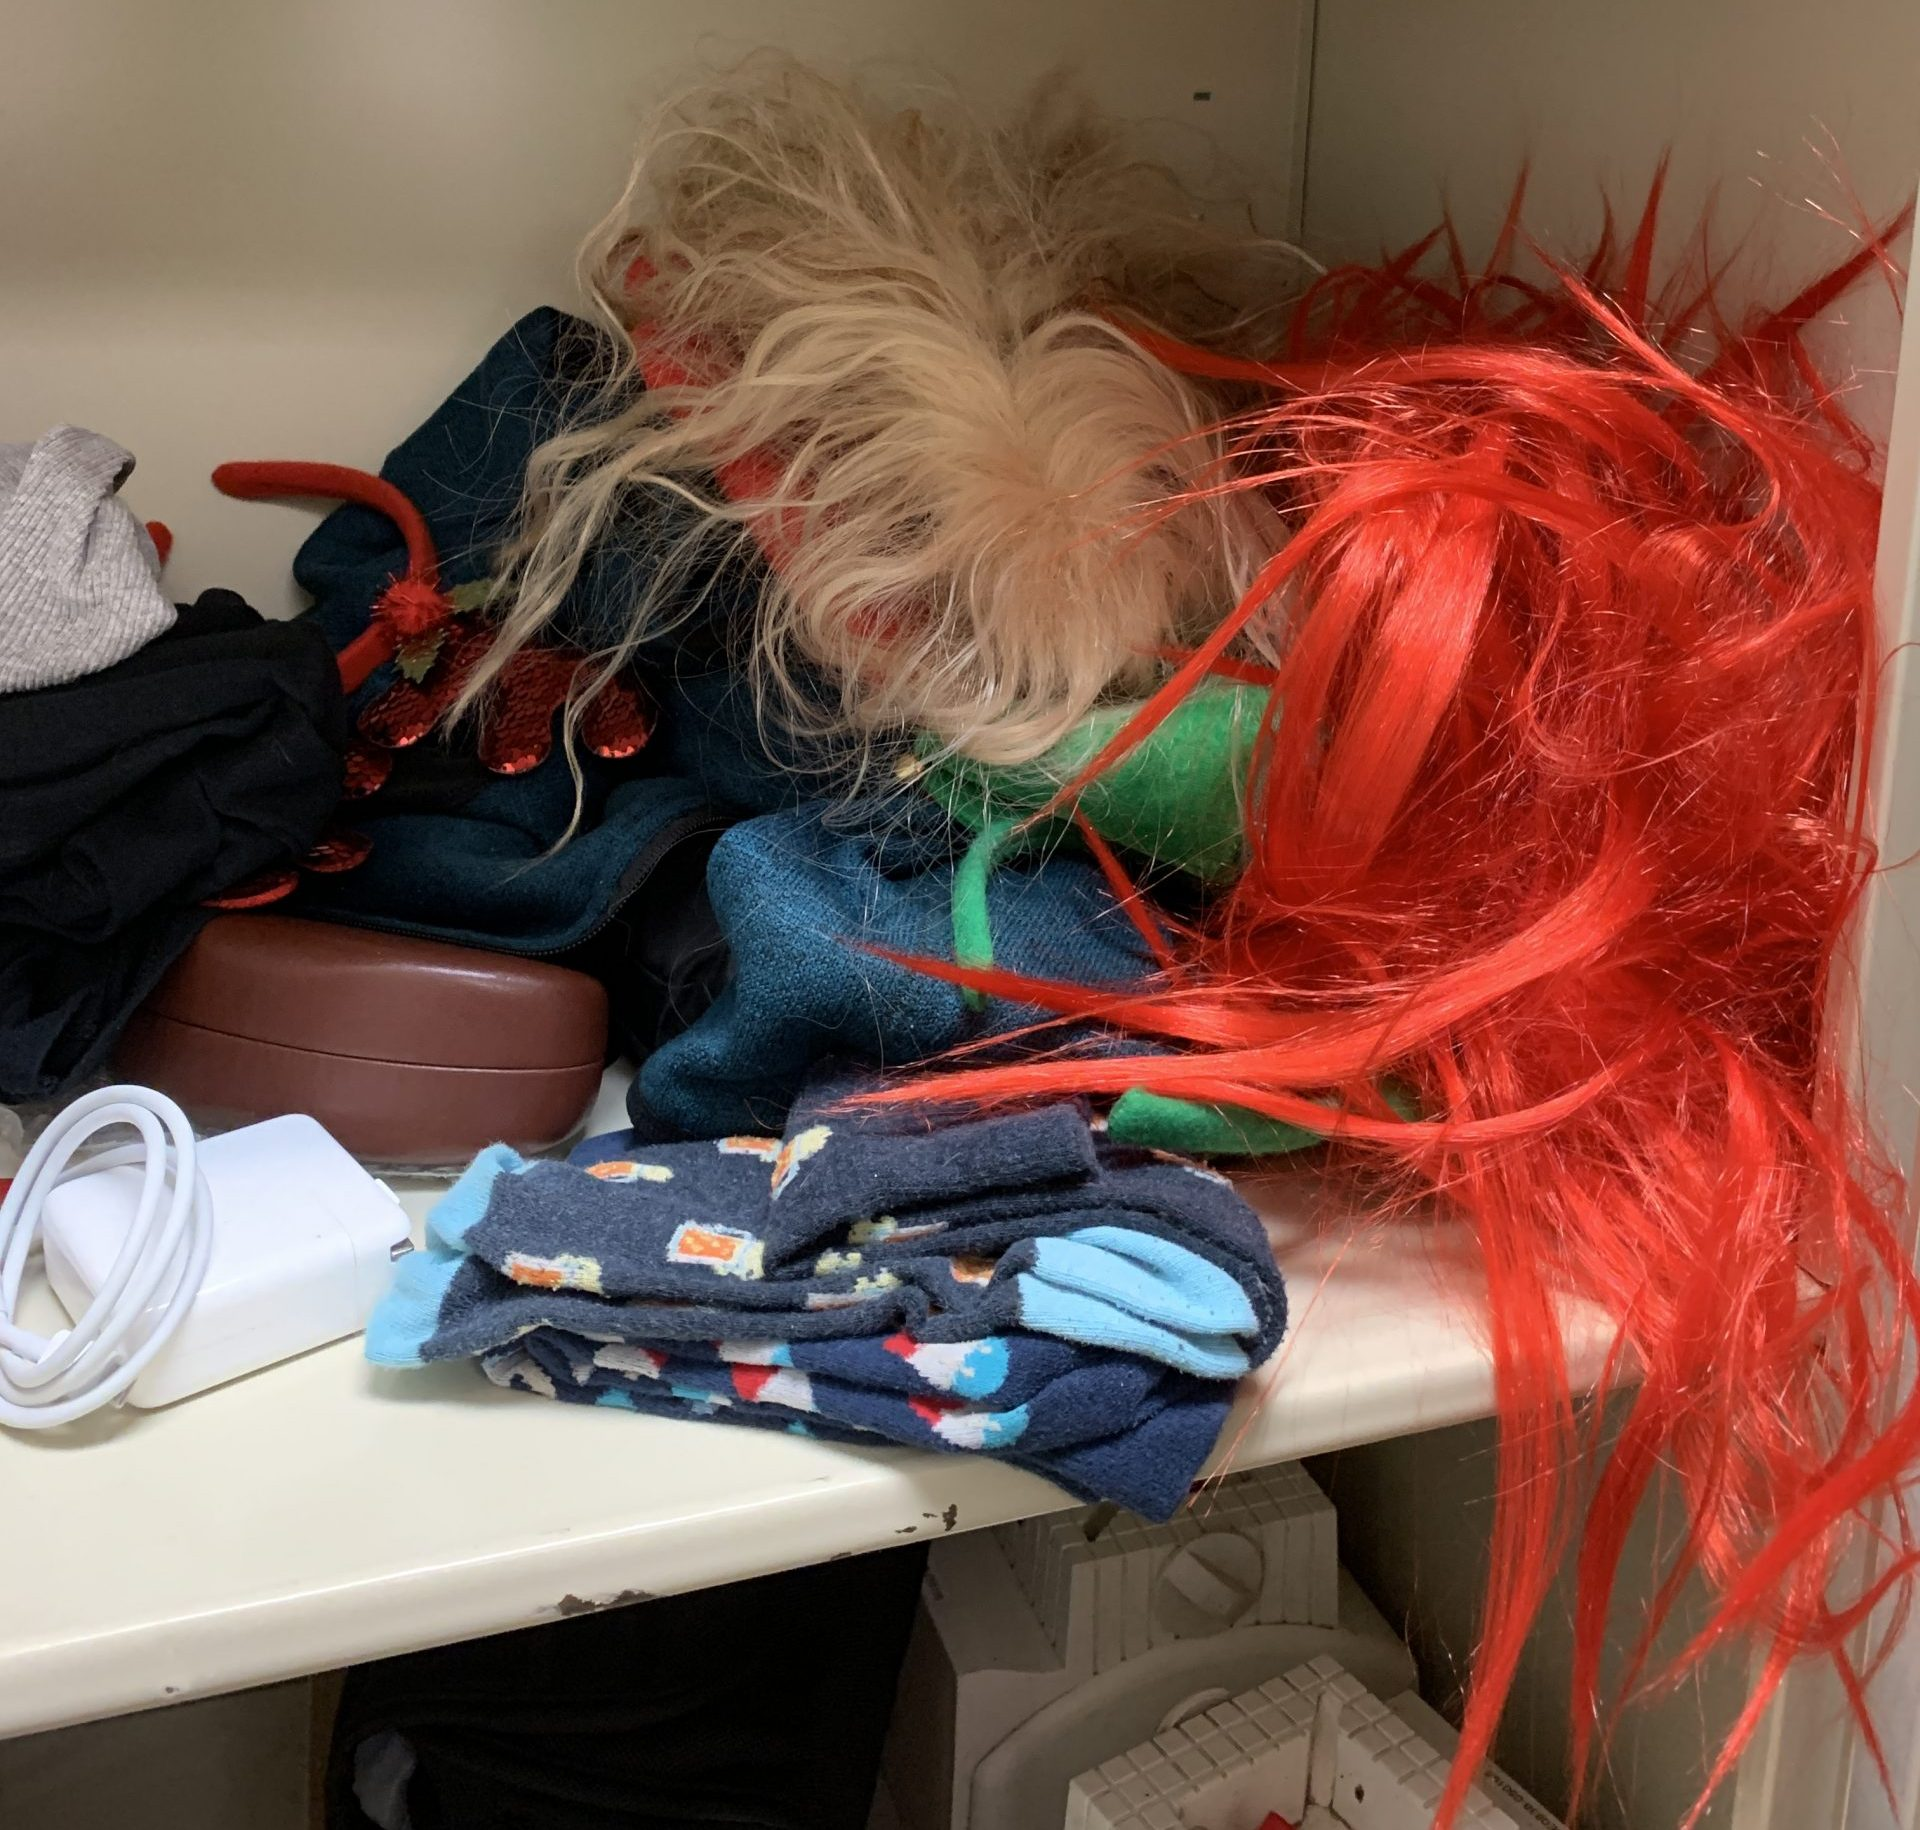 A pile of wigs and costume accessories